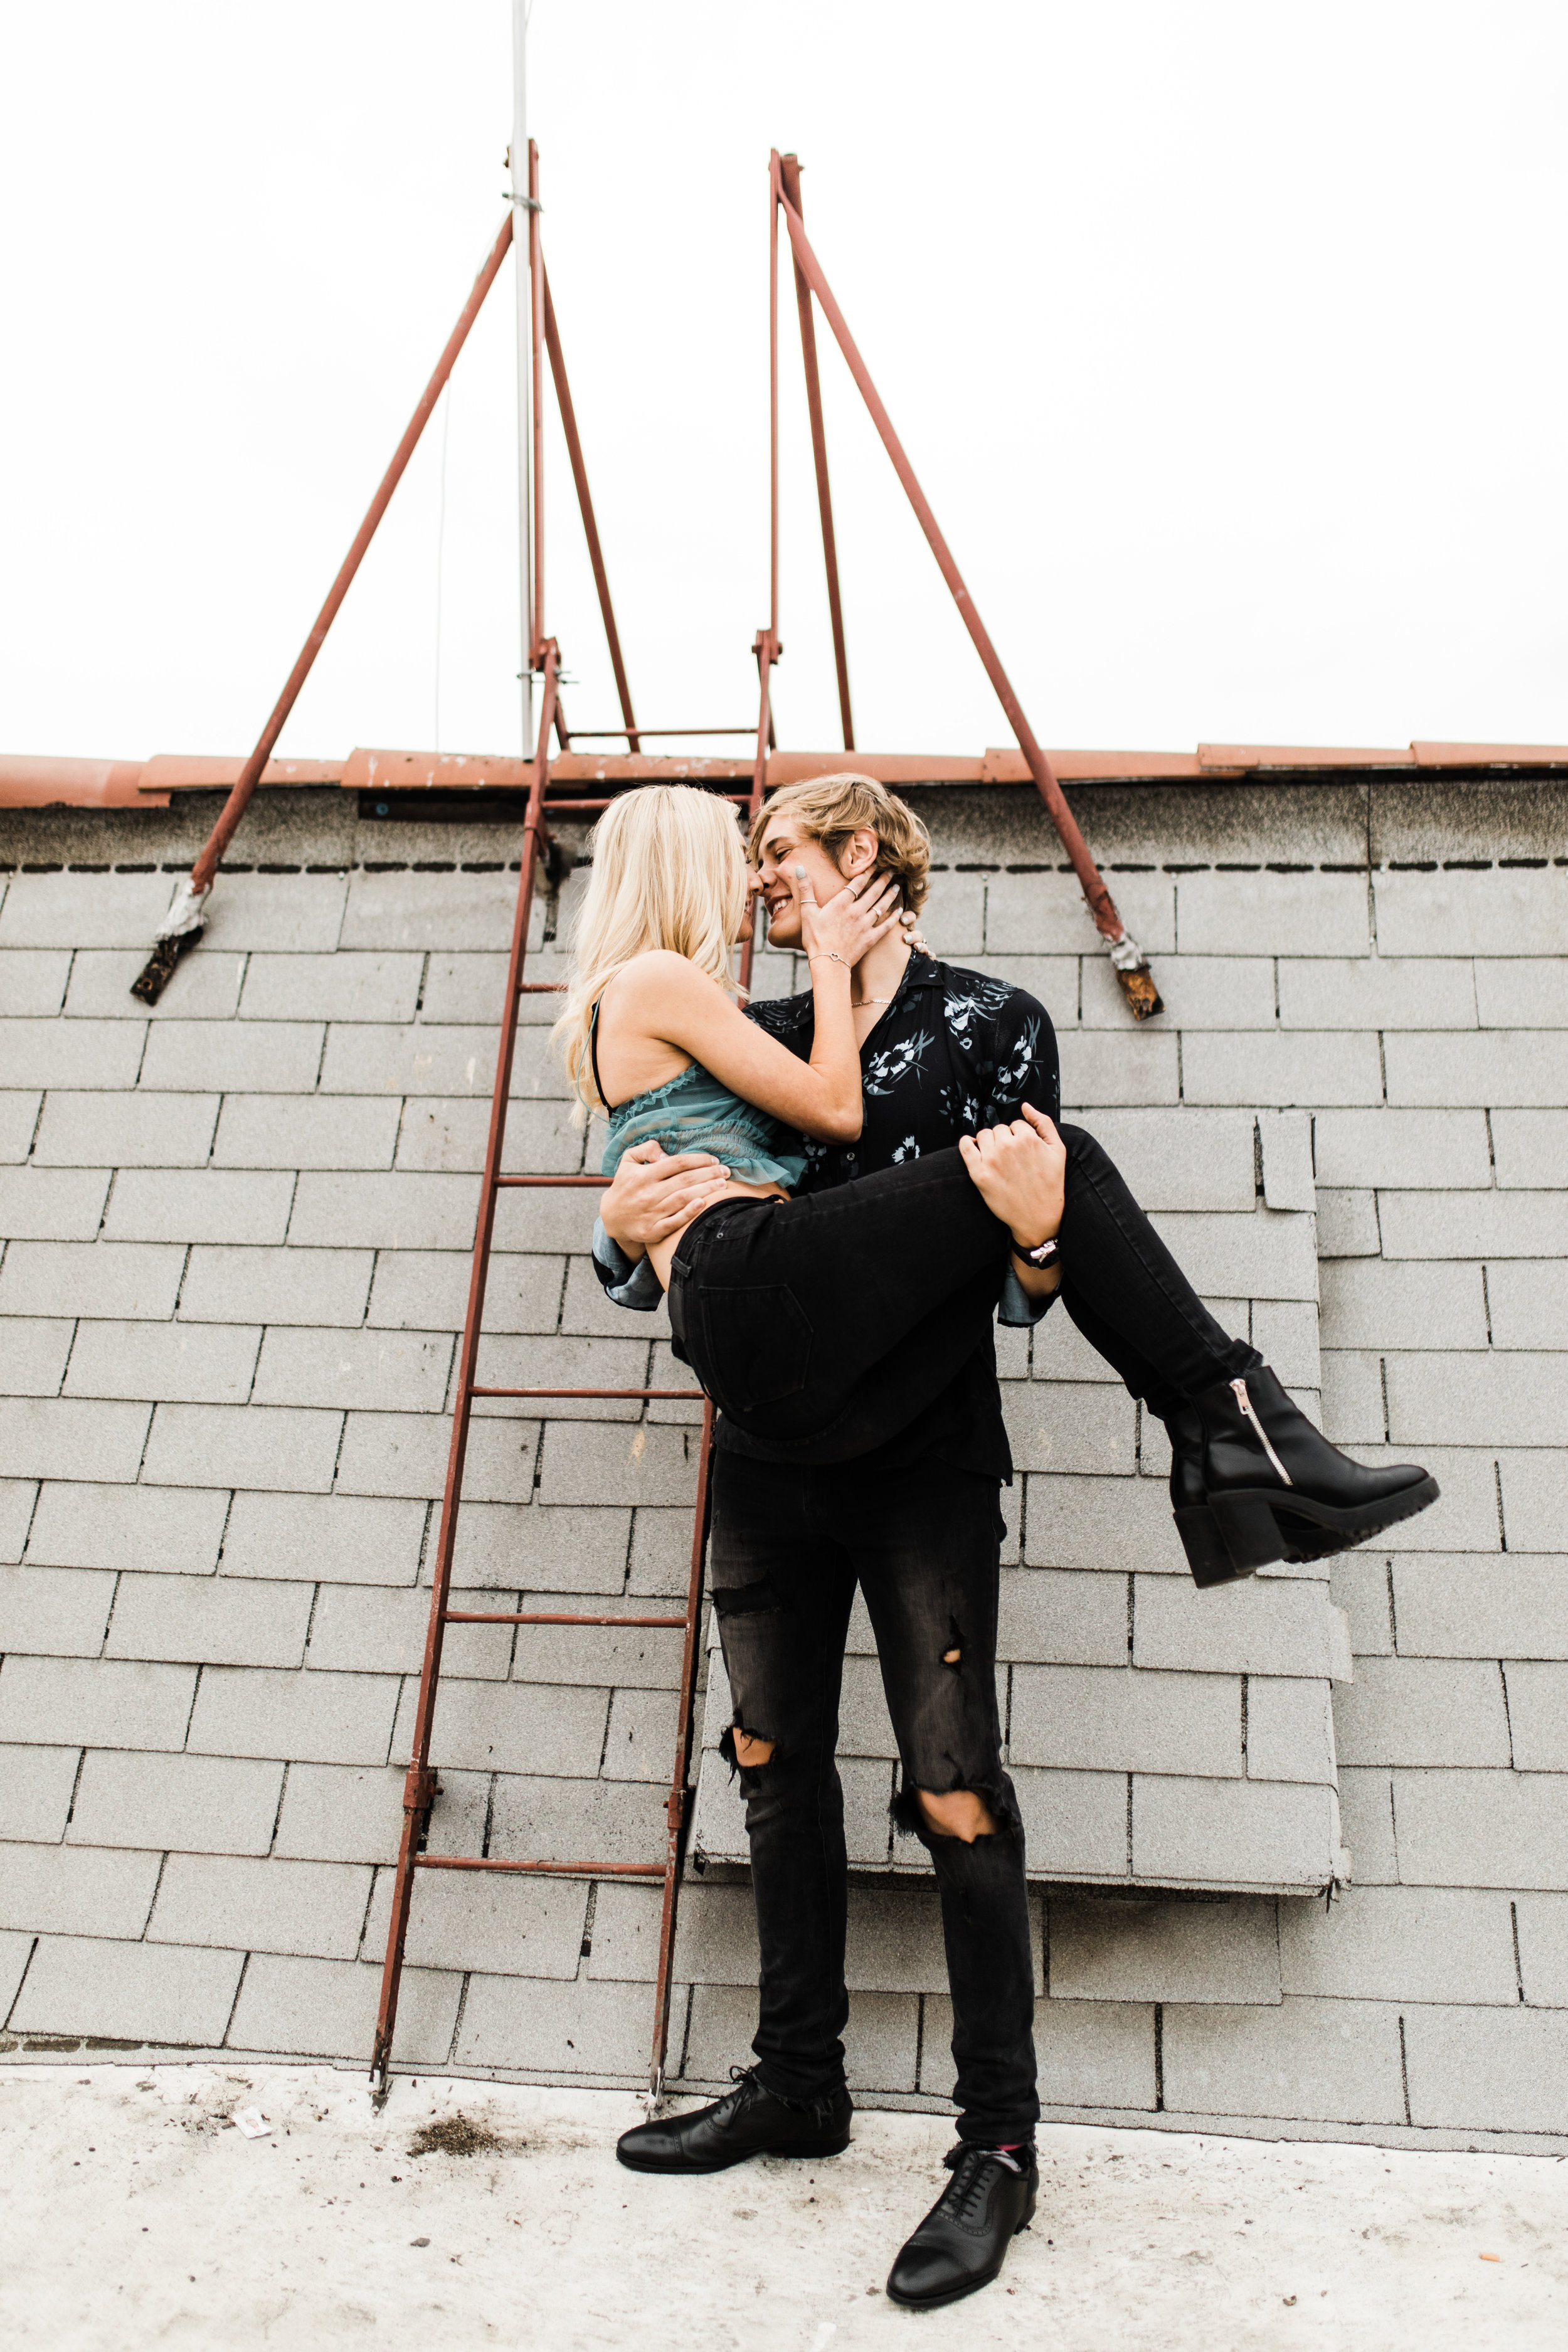 KylaLaufer&GusDeStJeor-Couples-Session-Los-Angeles-Rooftop-Sunset-Clarisse-Rae-Southern-California-Wedding-Photographer_6